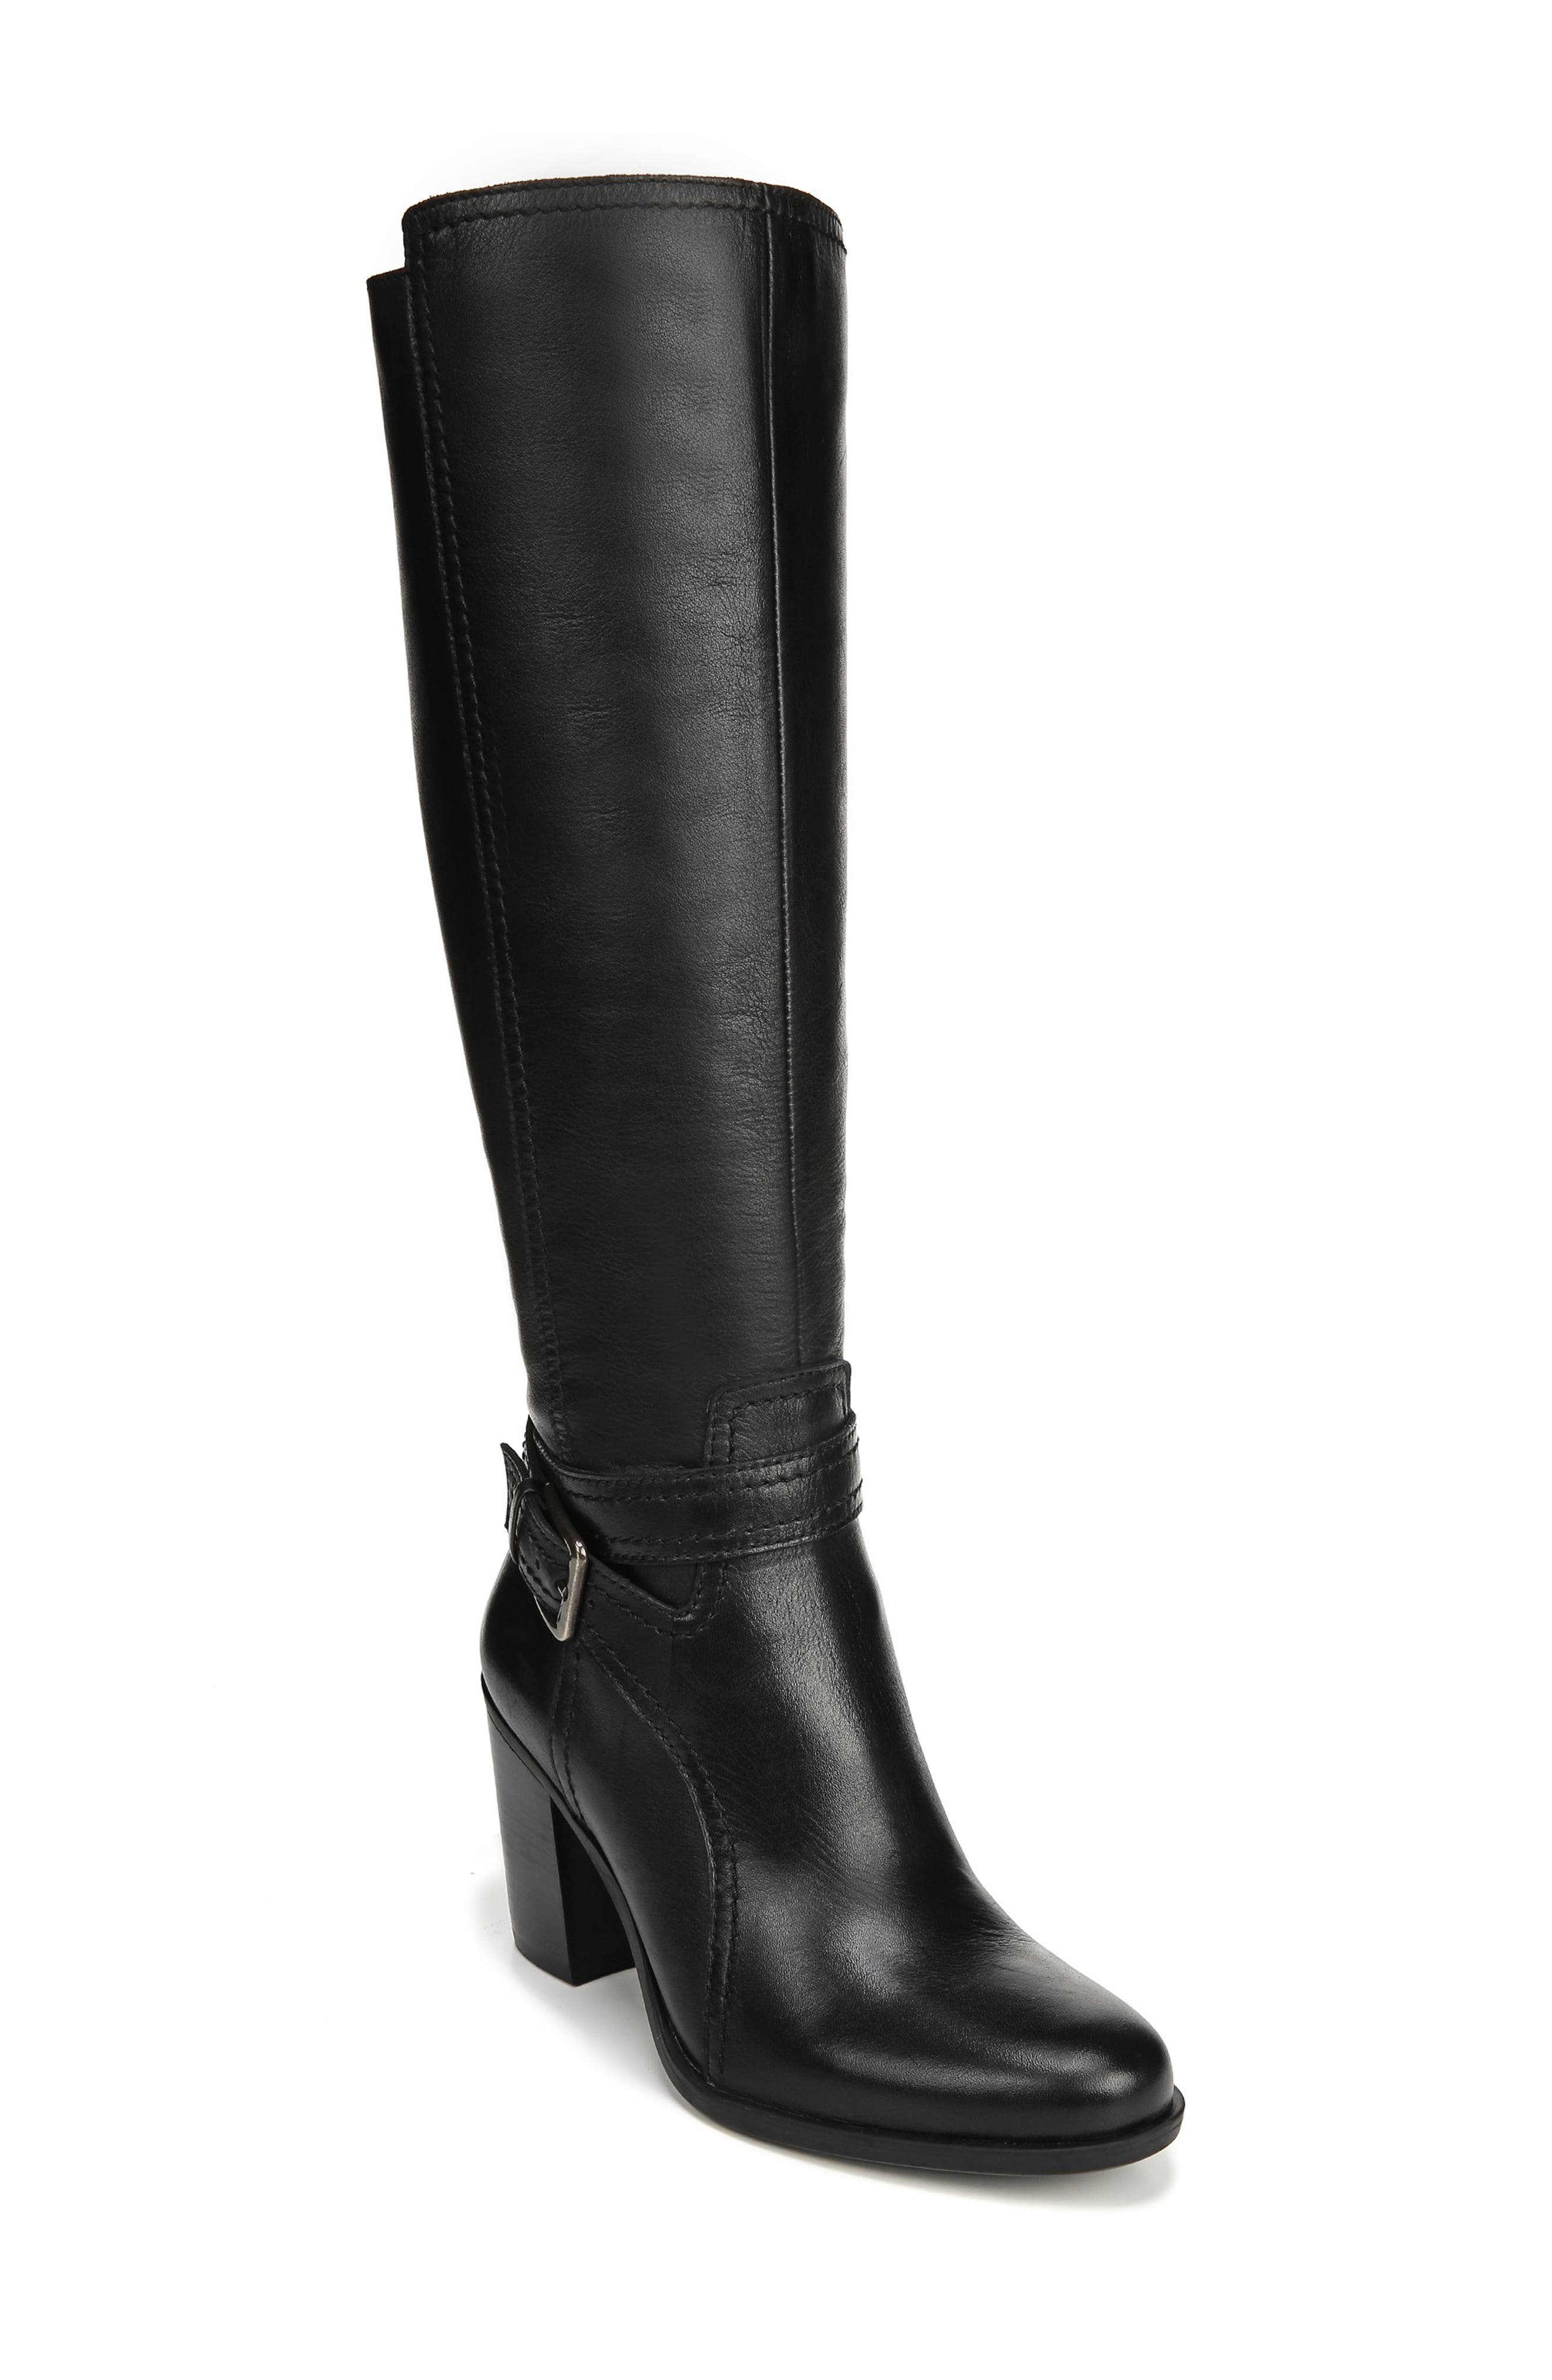 NATURALIZER Kelsey Knee High Boot, Main, color, BLACK LEATHER